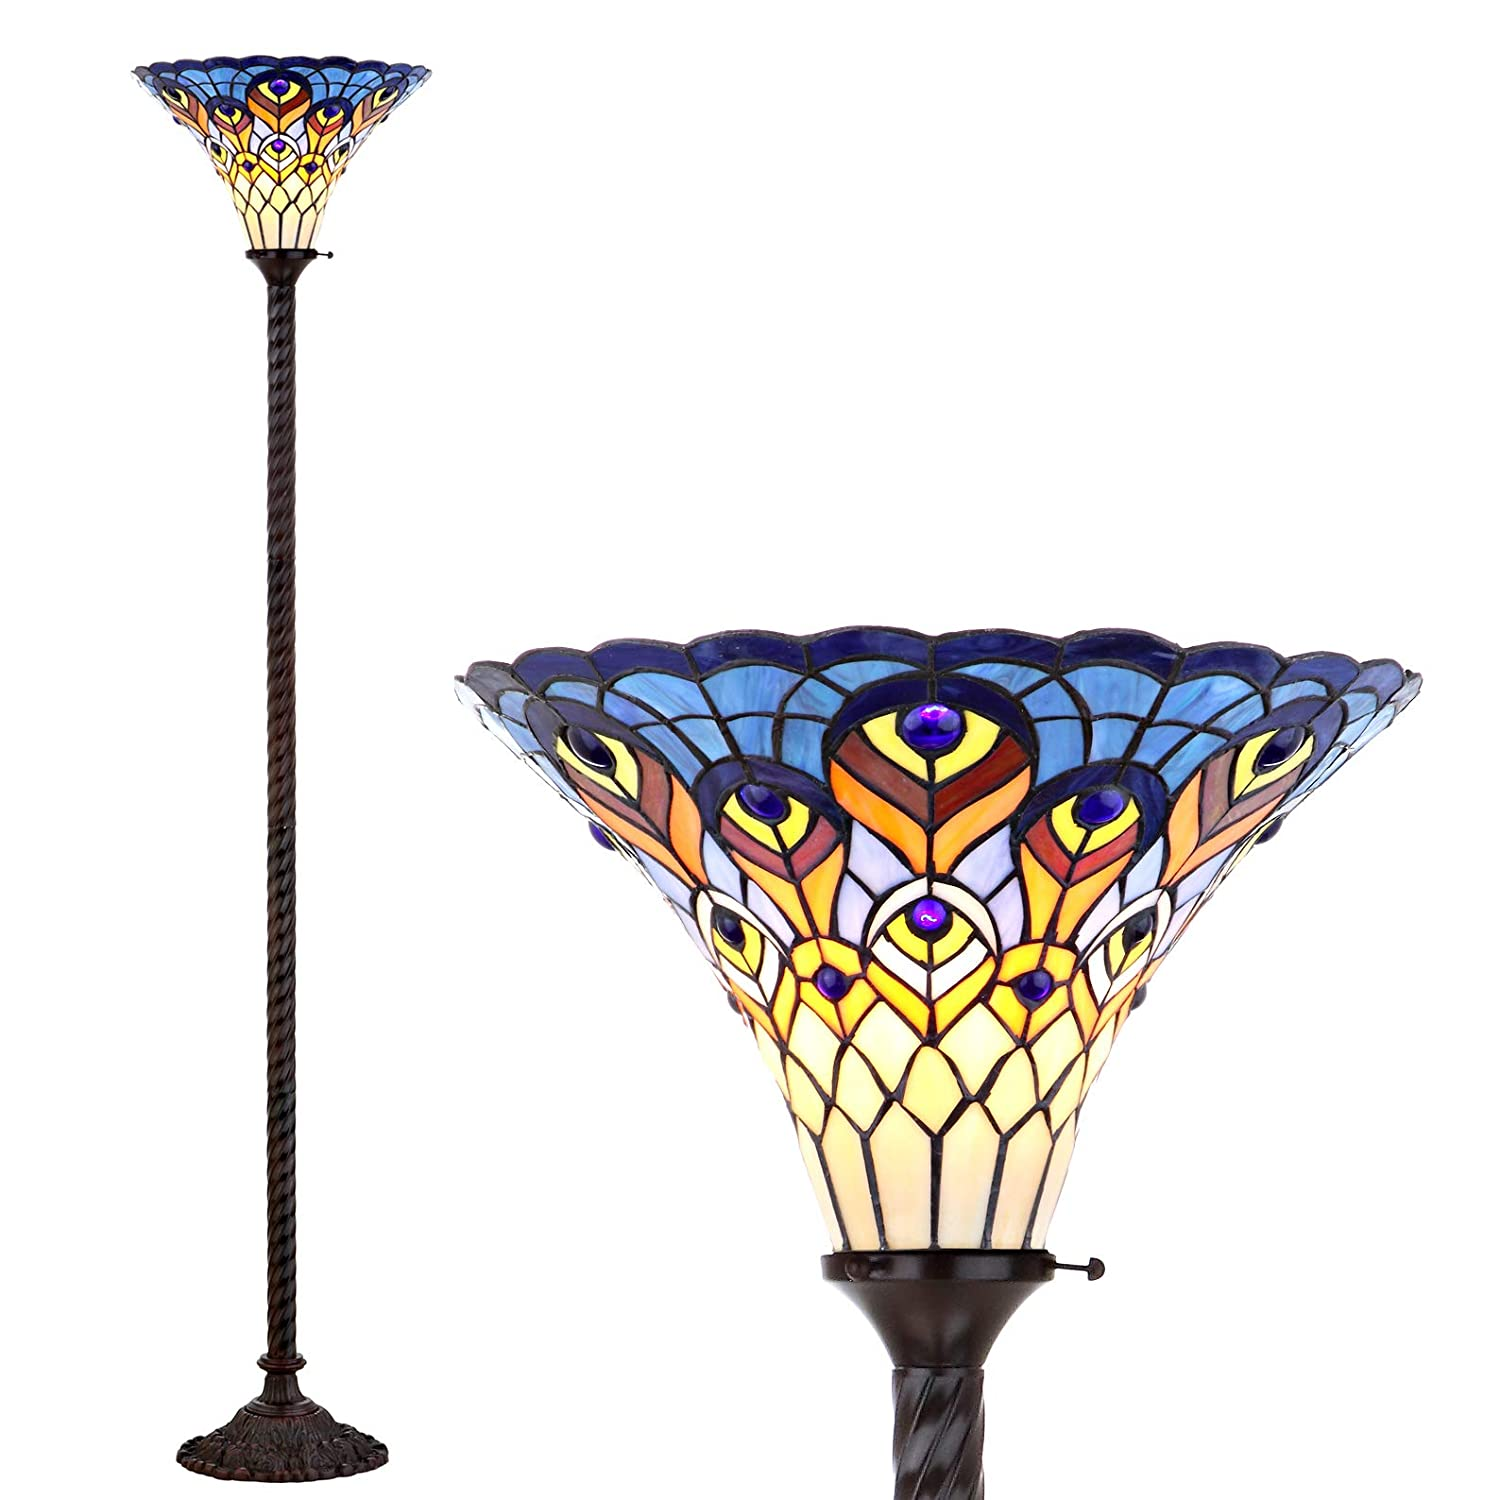 JONATHAN Y JYL8006A Peacock Tiffany 70 Torchiere LED Floor Lamp, Classic Traditional Styling, Bulb Included, Bronze